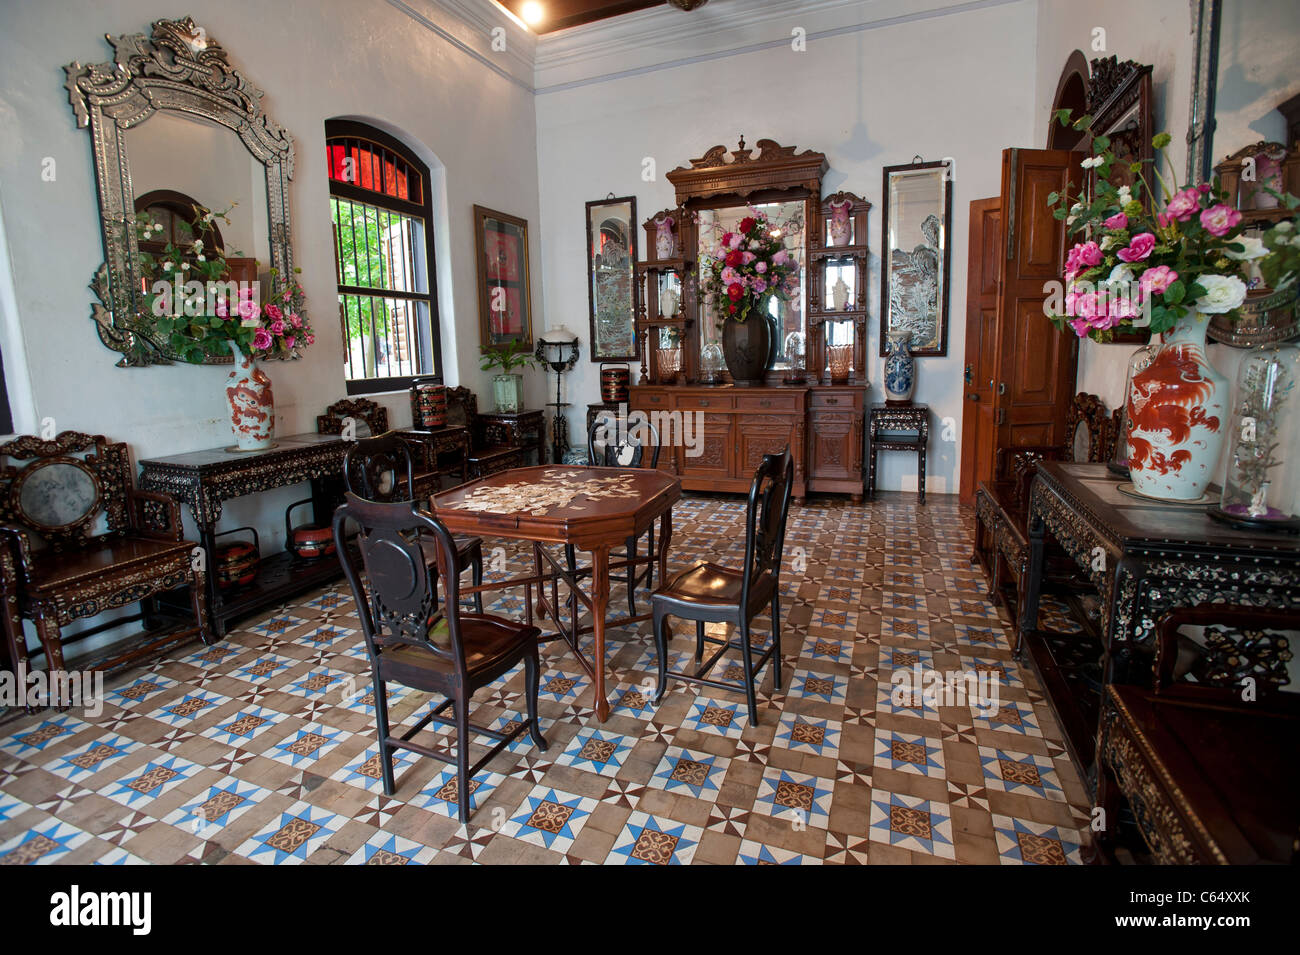 Interior of the Peranakan Mansion, George Town, Penang Malaysia - Stock Image